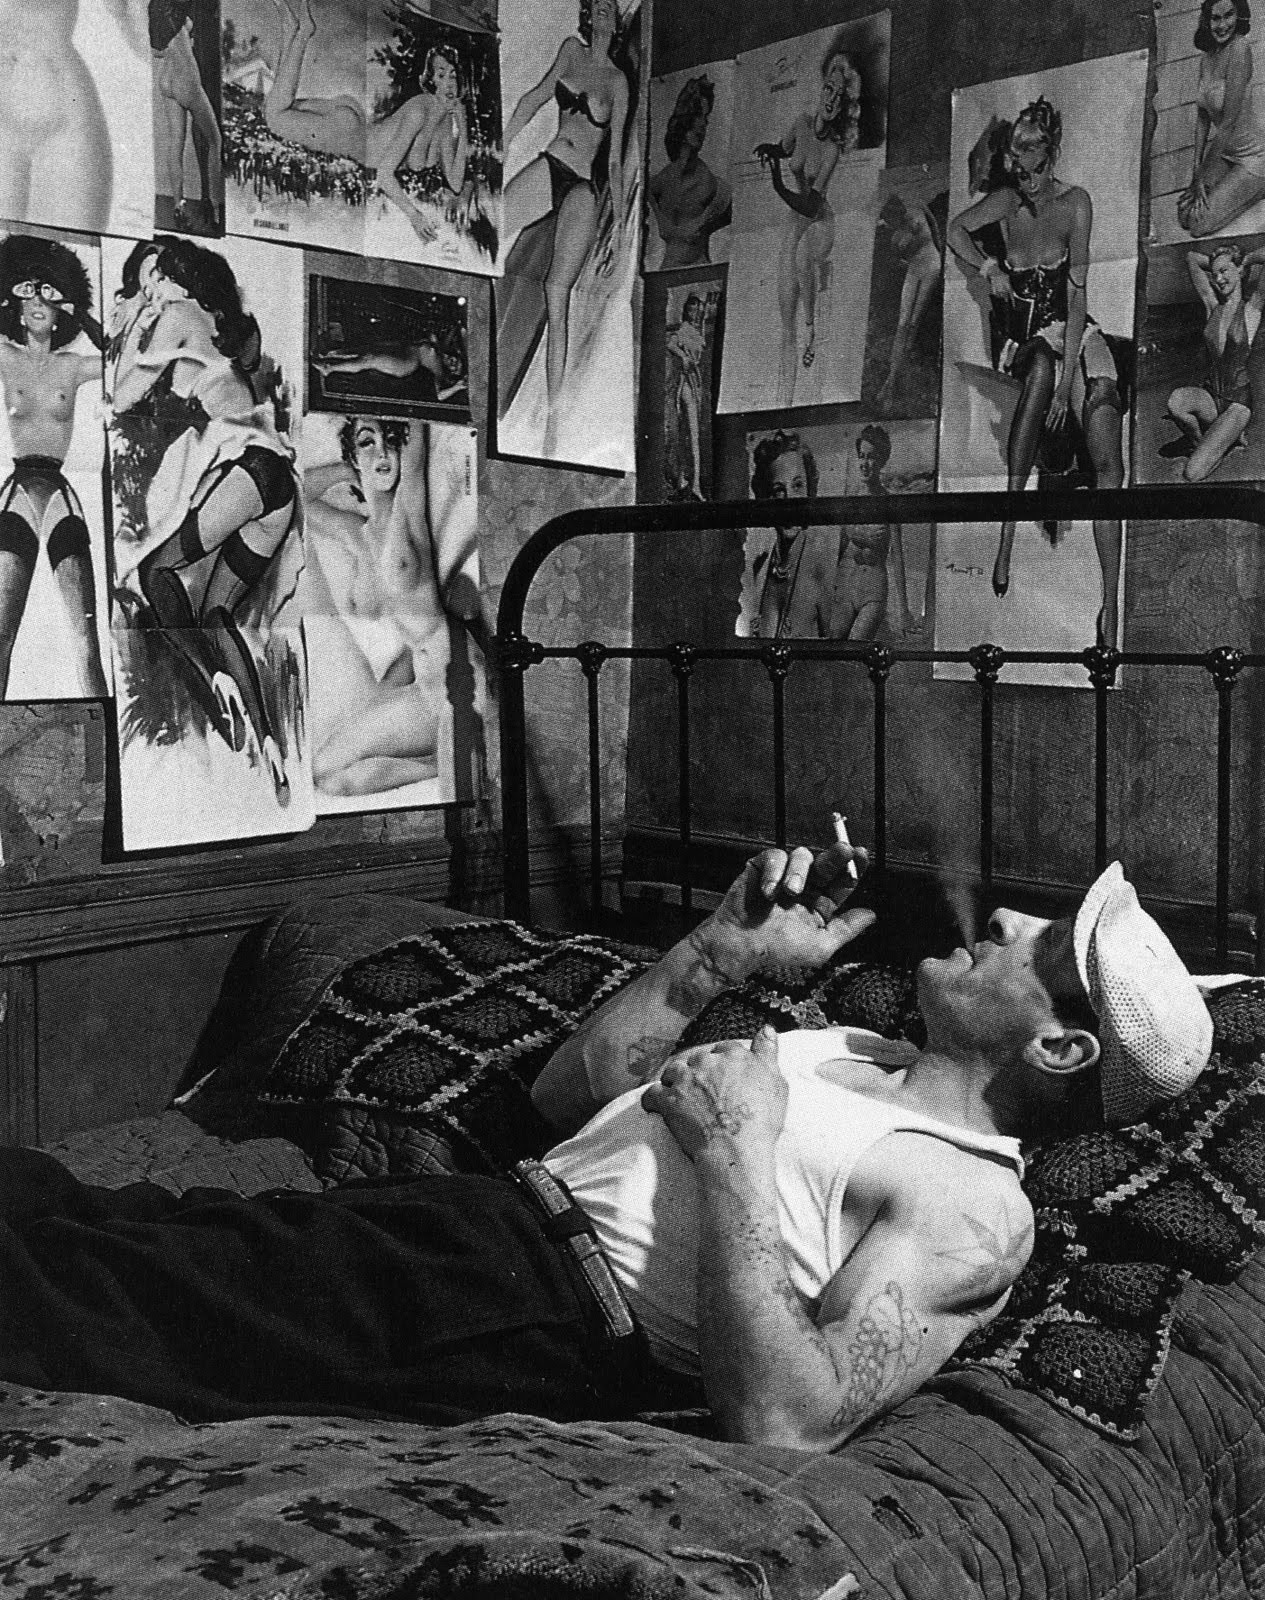 atelier_1_15_avril_photo_doisneau023